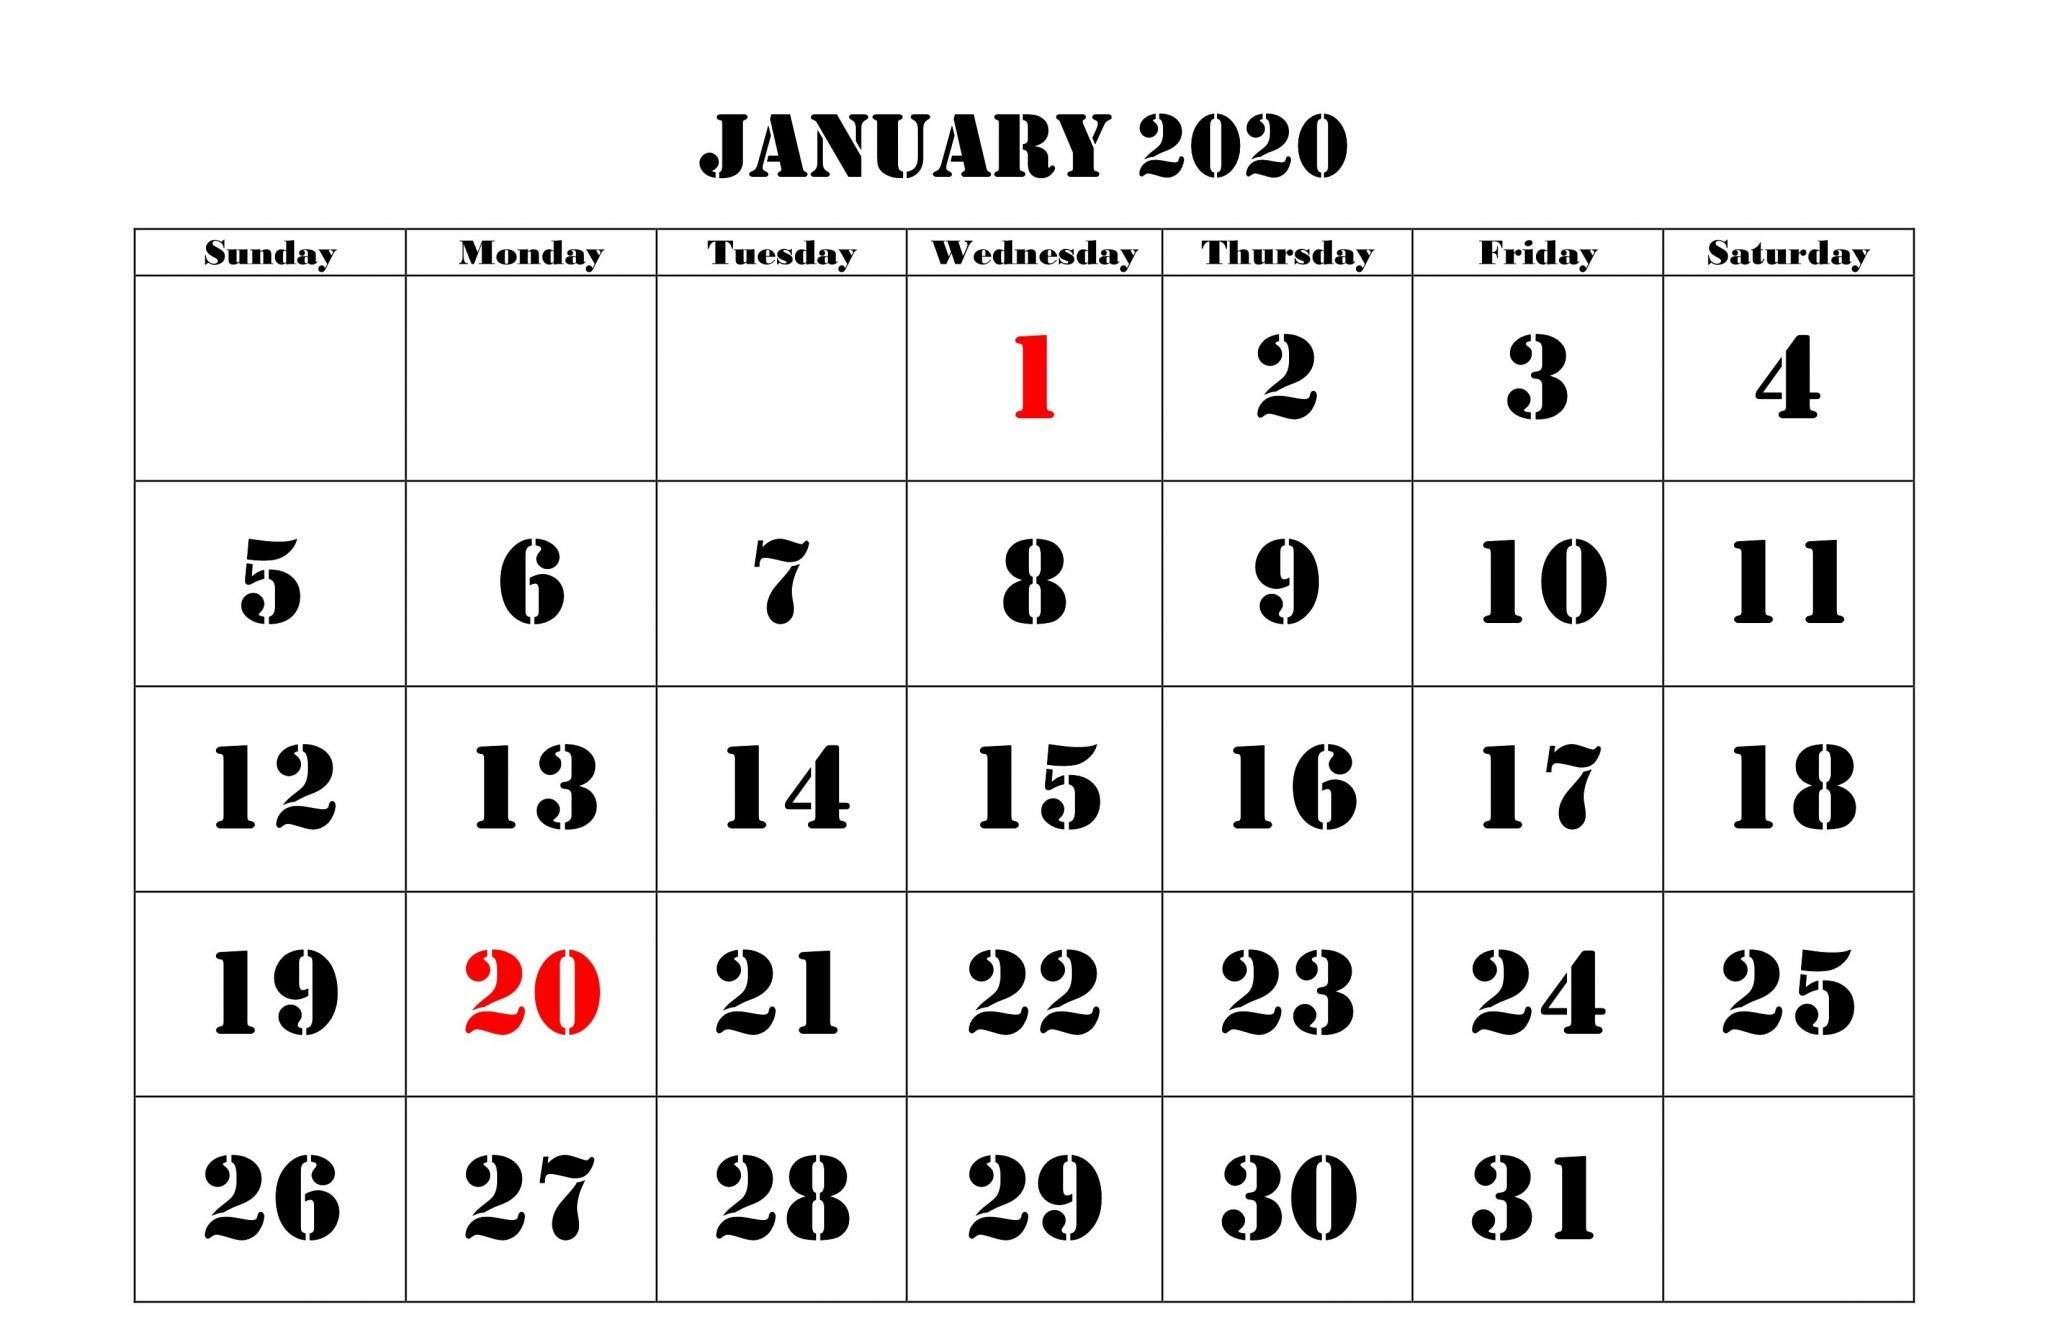 2020 January Holidays Calendar Printable Templates With Images